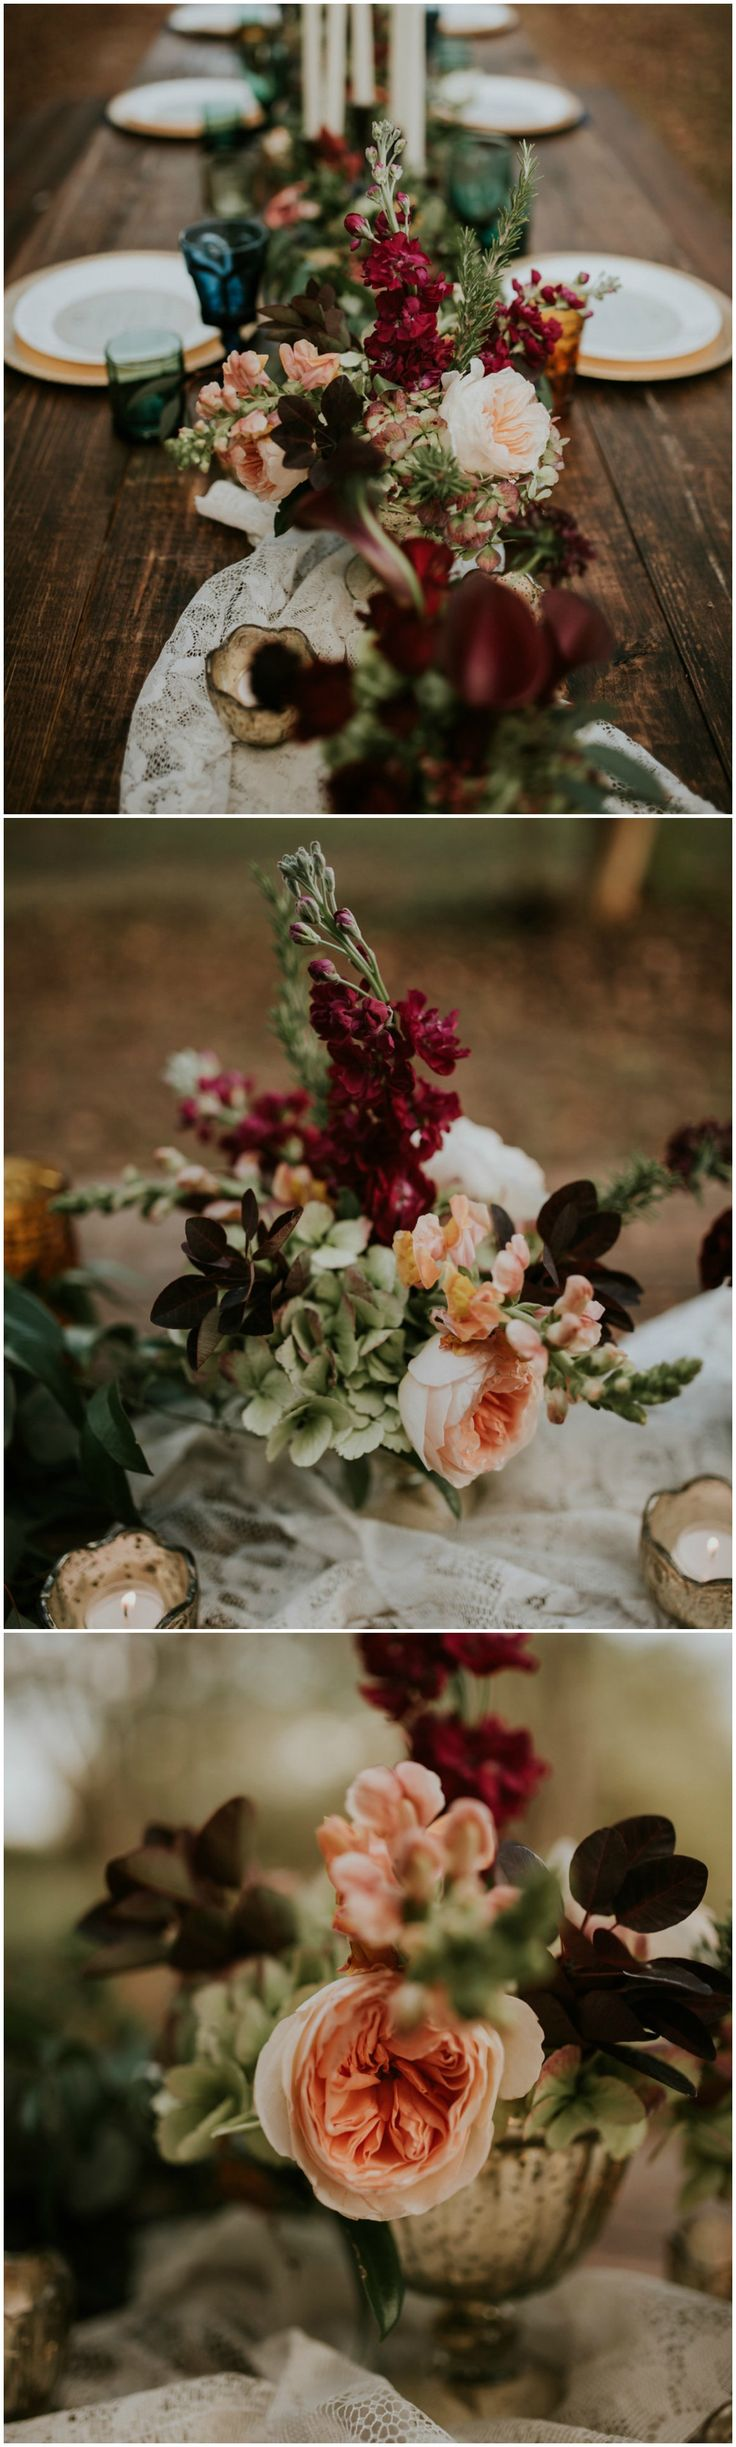 Romantic wedding reception floral centerpieces, peach and wine colored florals, white lace table runner // Moriah Elisabeth Photography